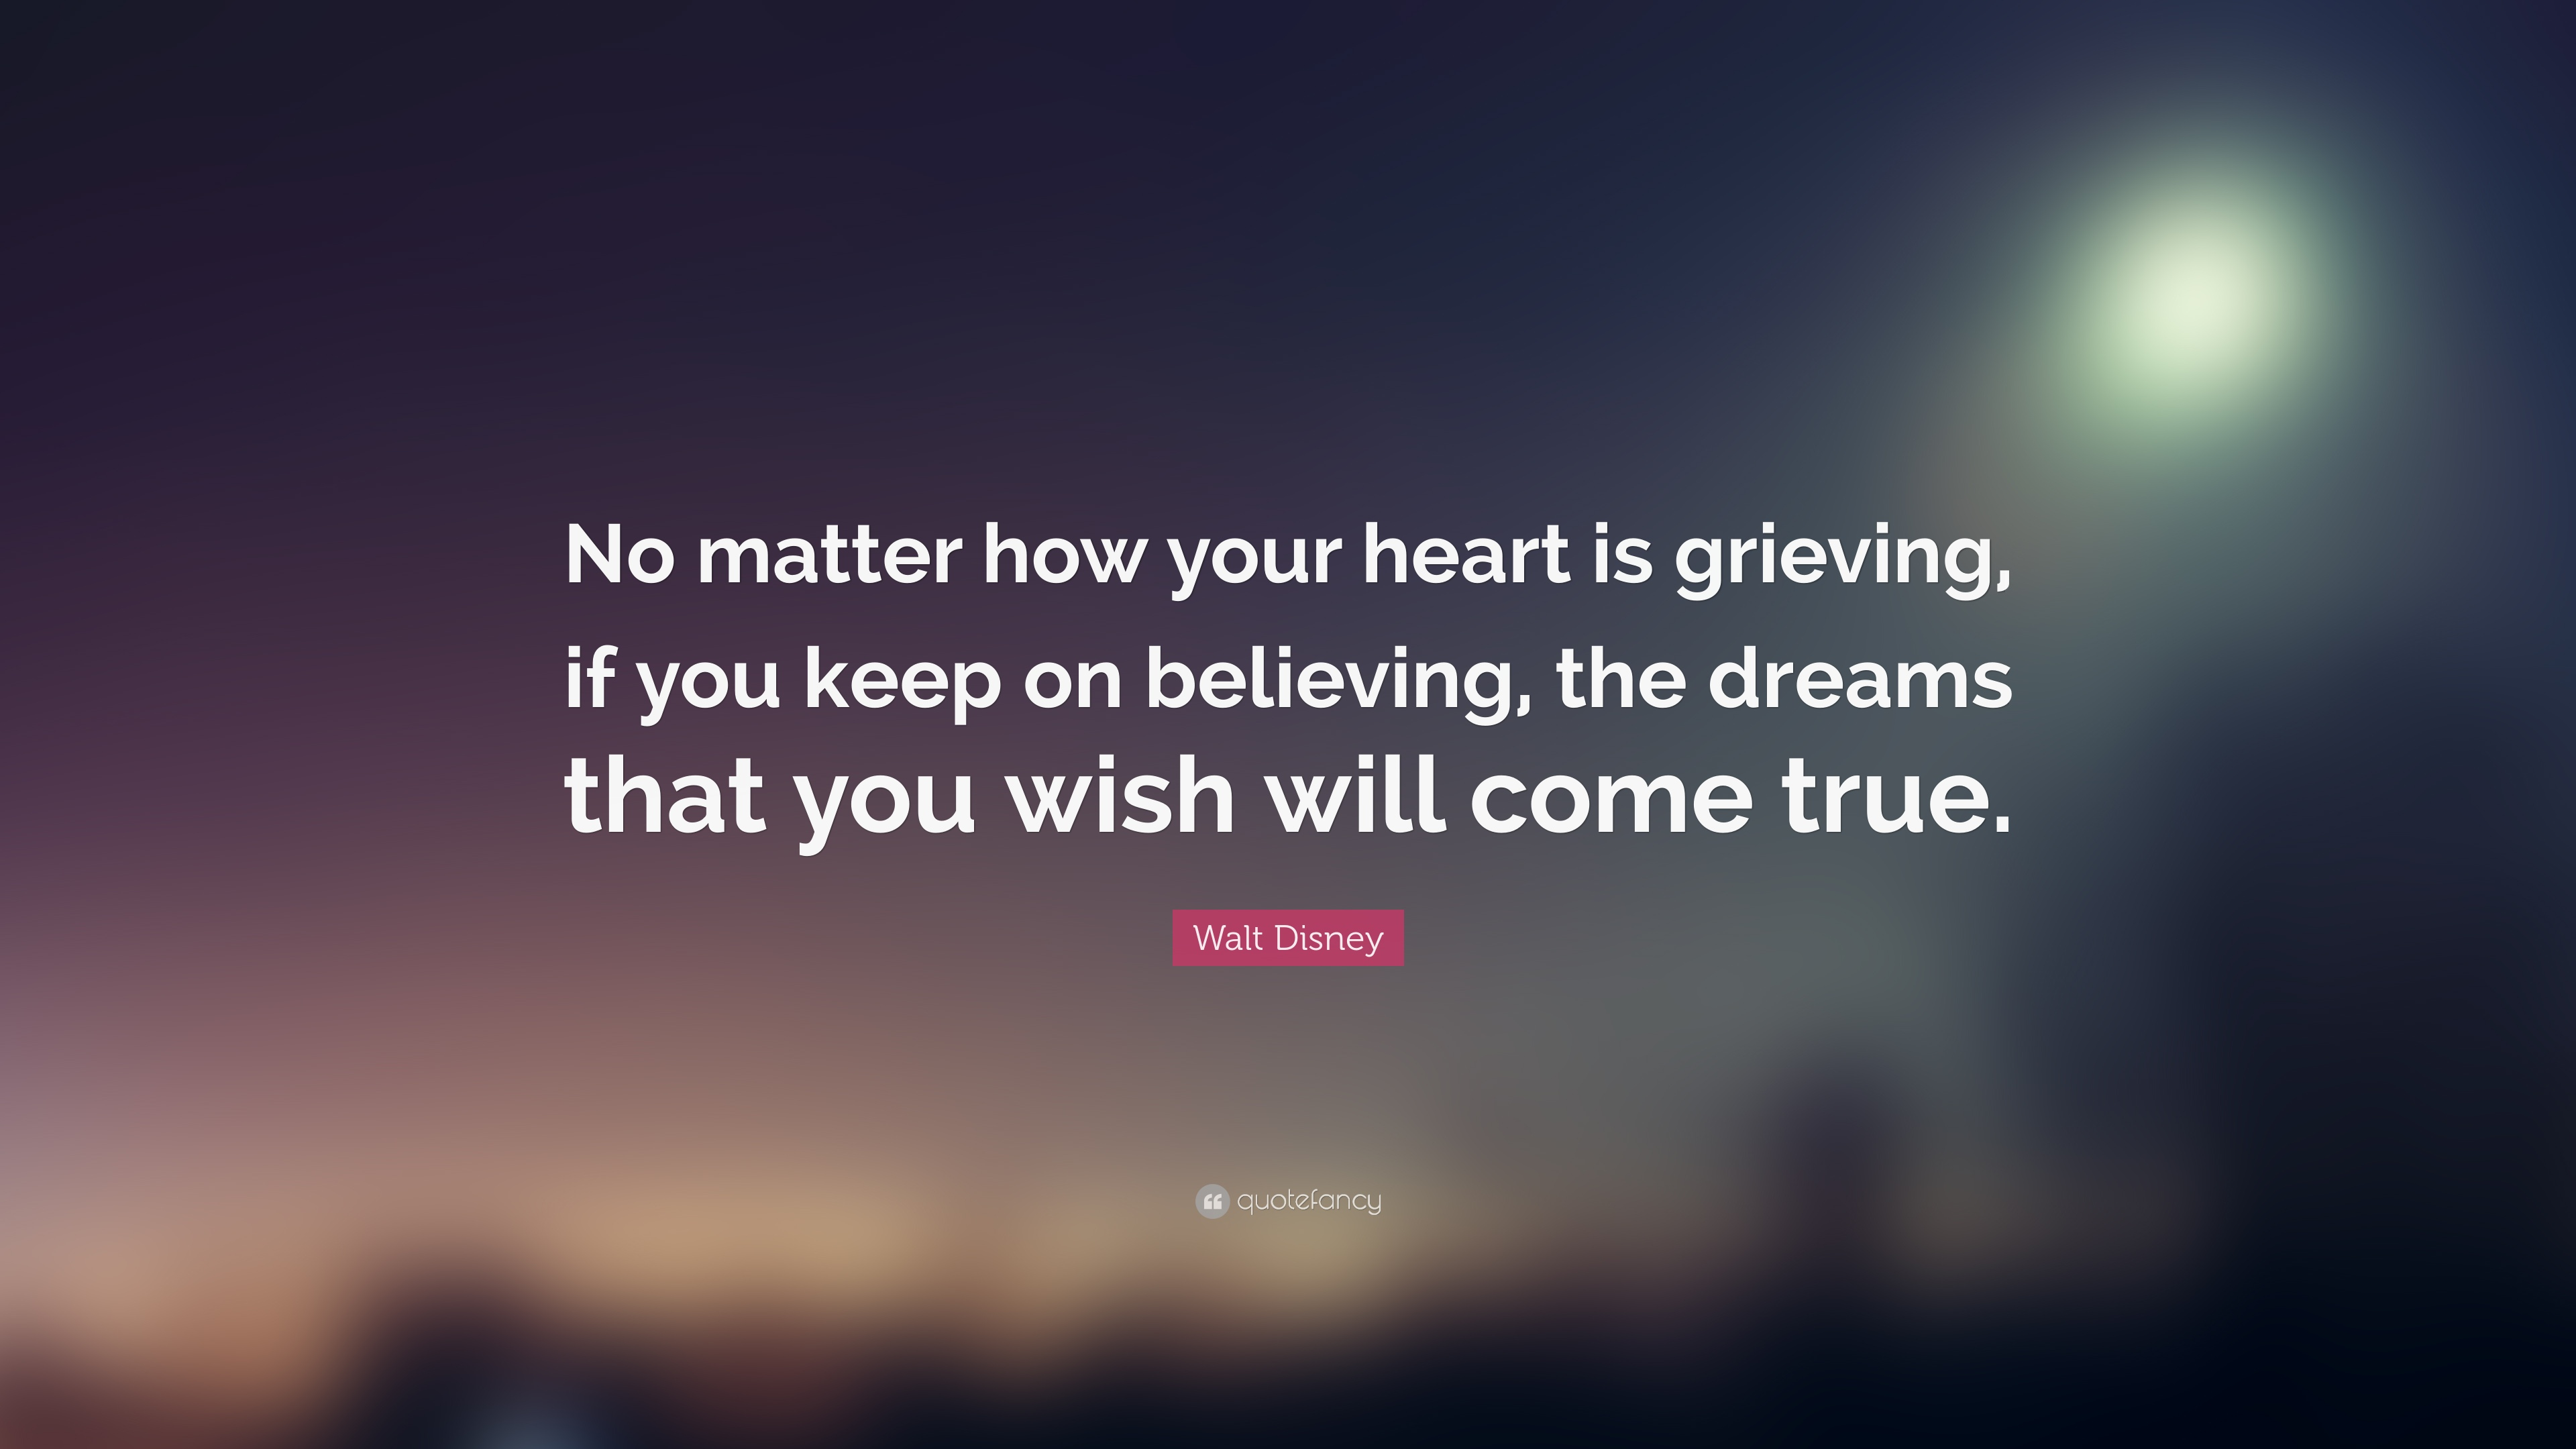 Walt Disney Quote: U201cNo Matter How Your Heart Is Grieving, If You Keep